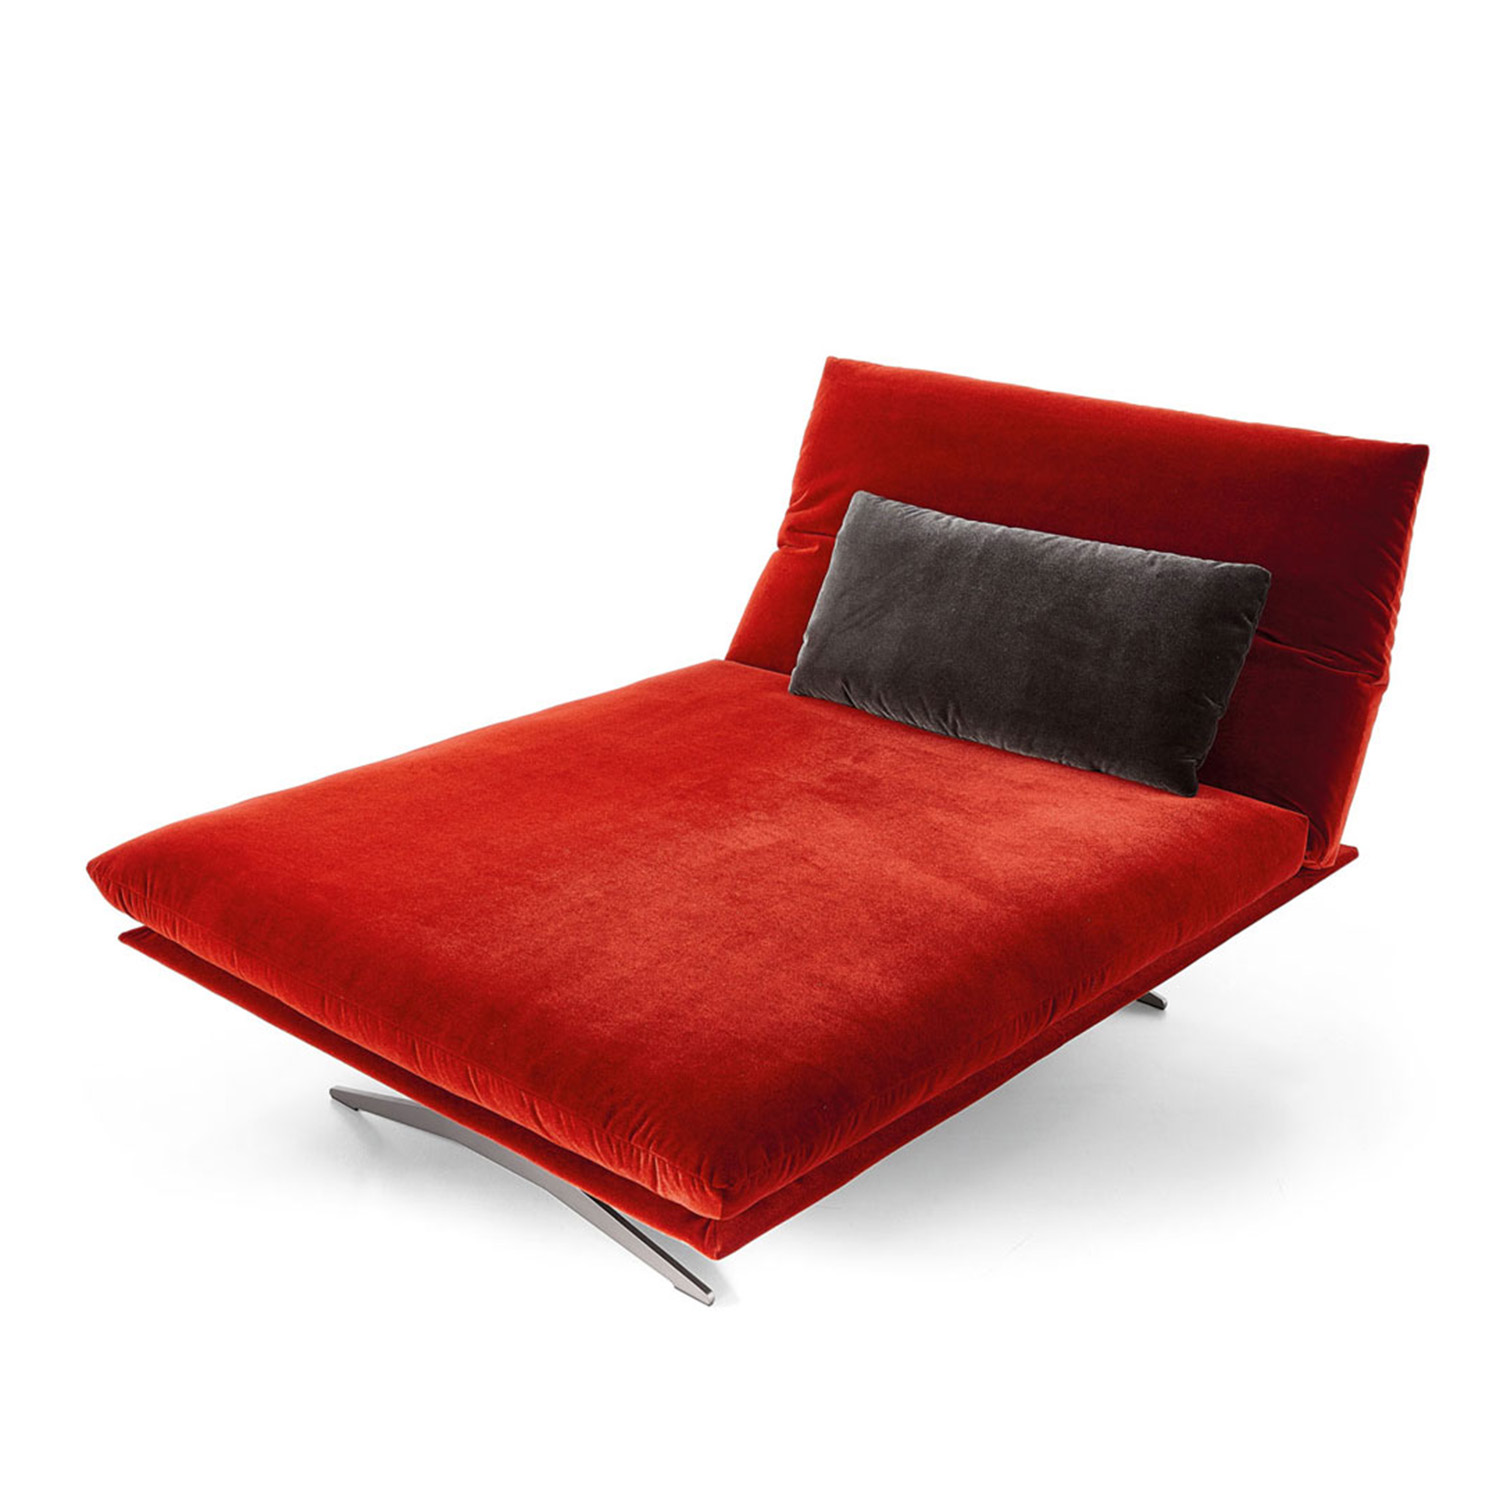 Koinor Sofa Francis In Rot Fashion Stoff Mobel Bar Ag